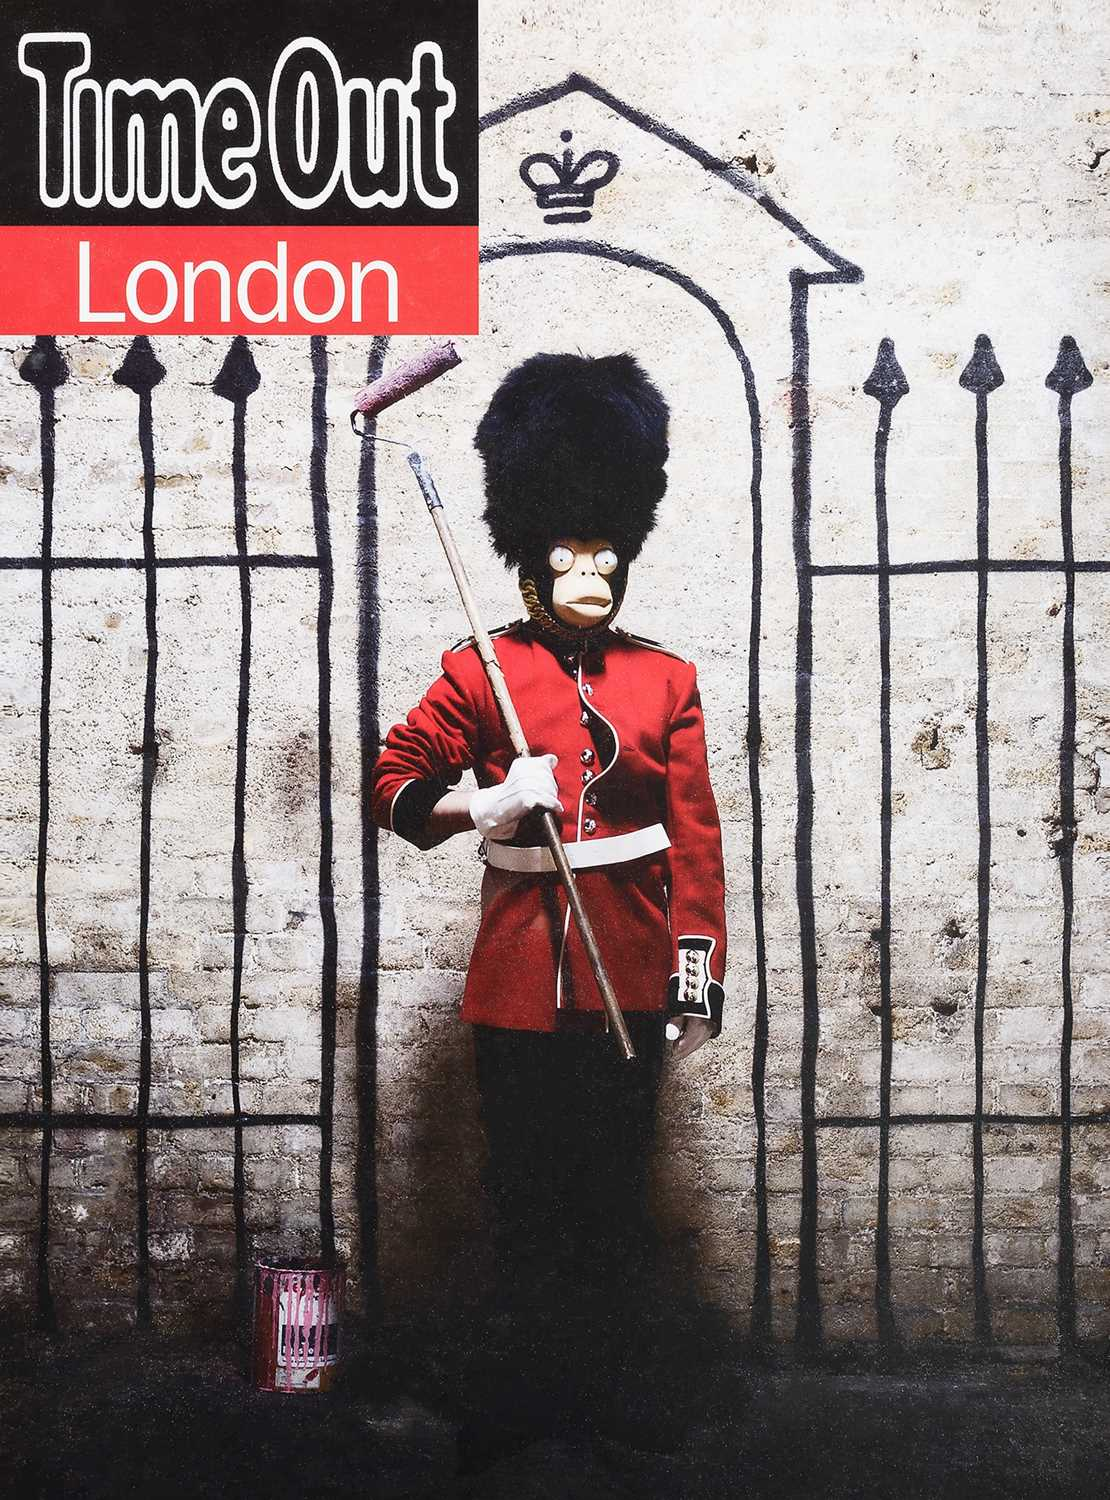 Lot 49-Banksy (British 1974-), 'Time Out London', 2010